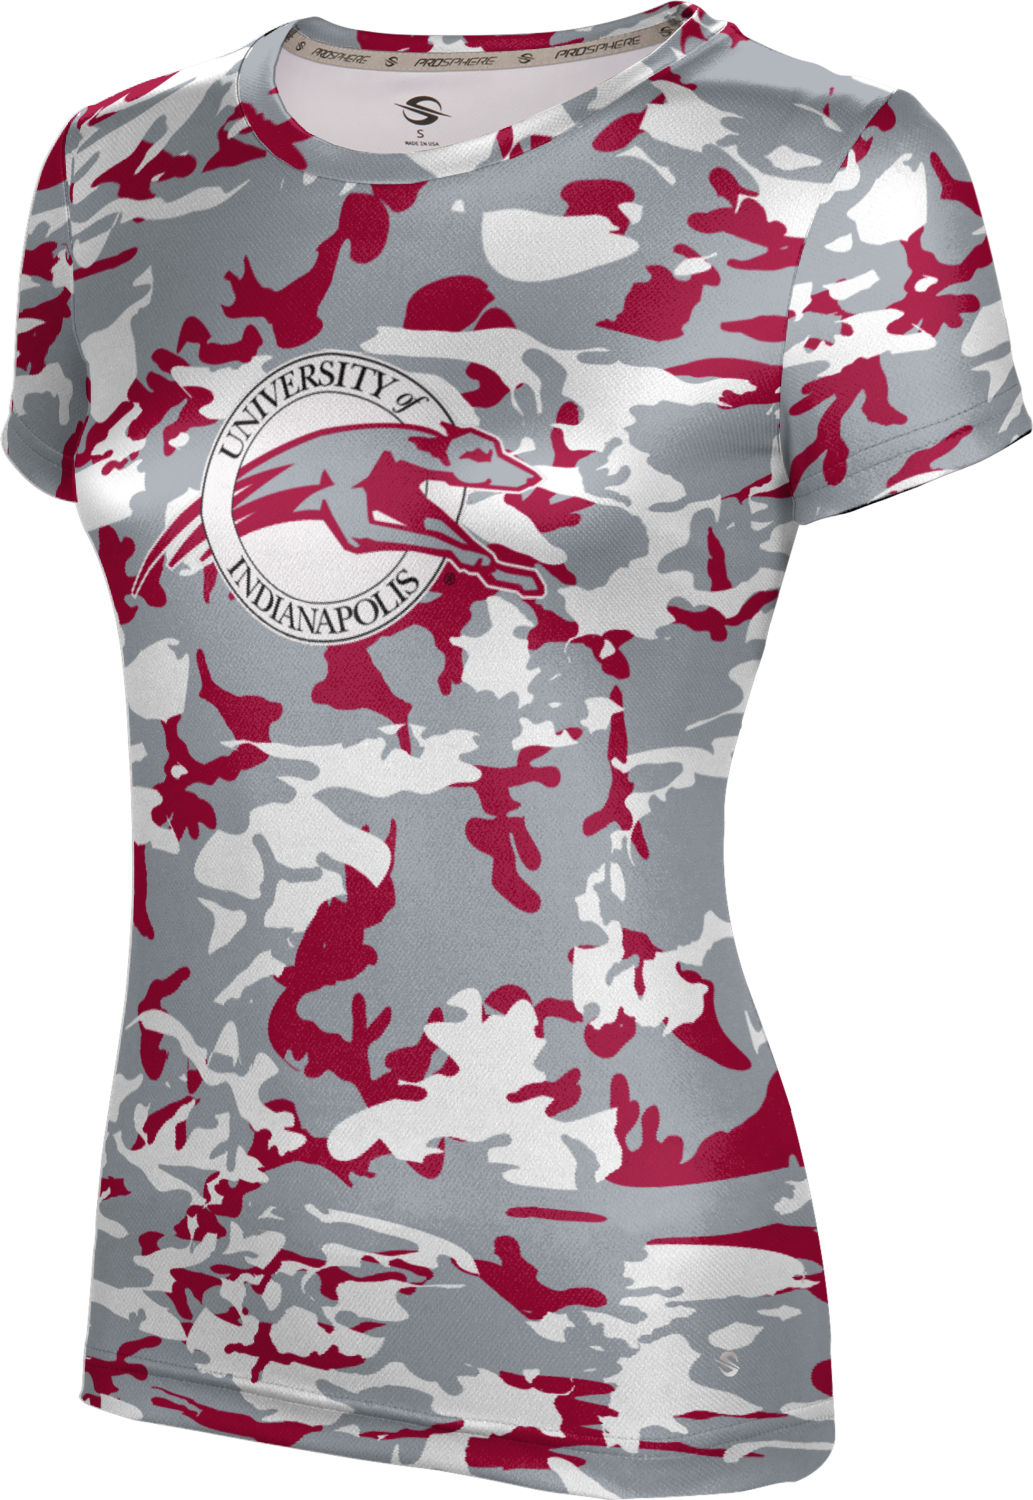 ProSphere Girls' University of Indianapolis Camo Tech Tee